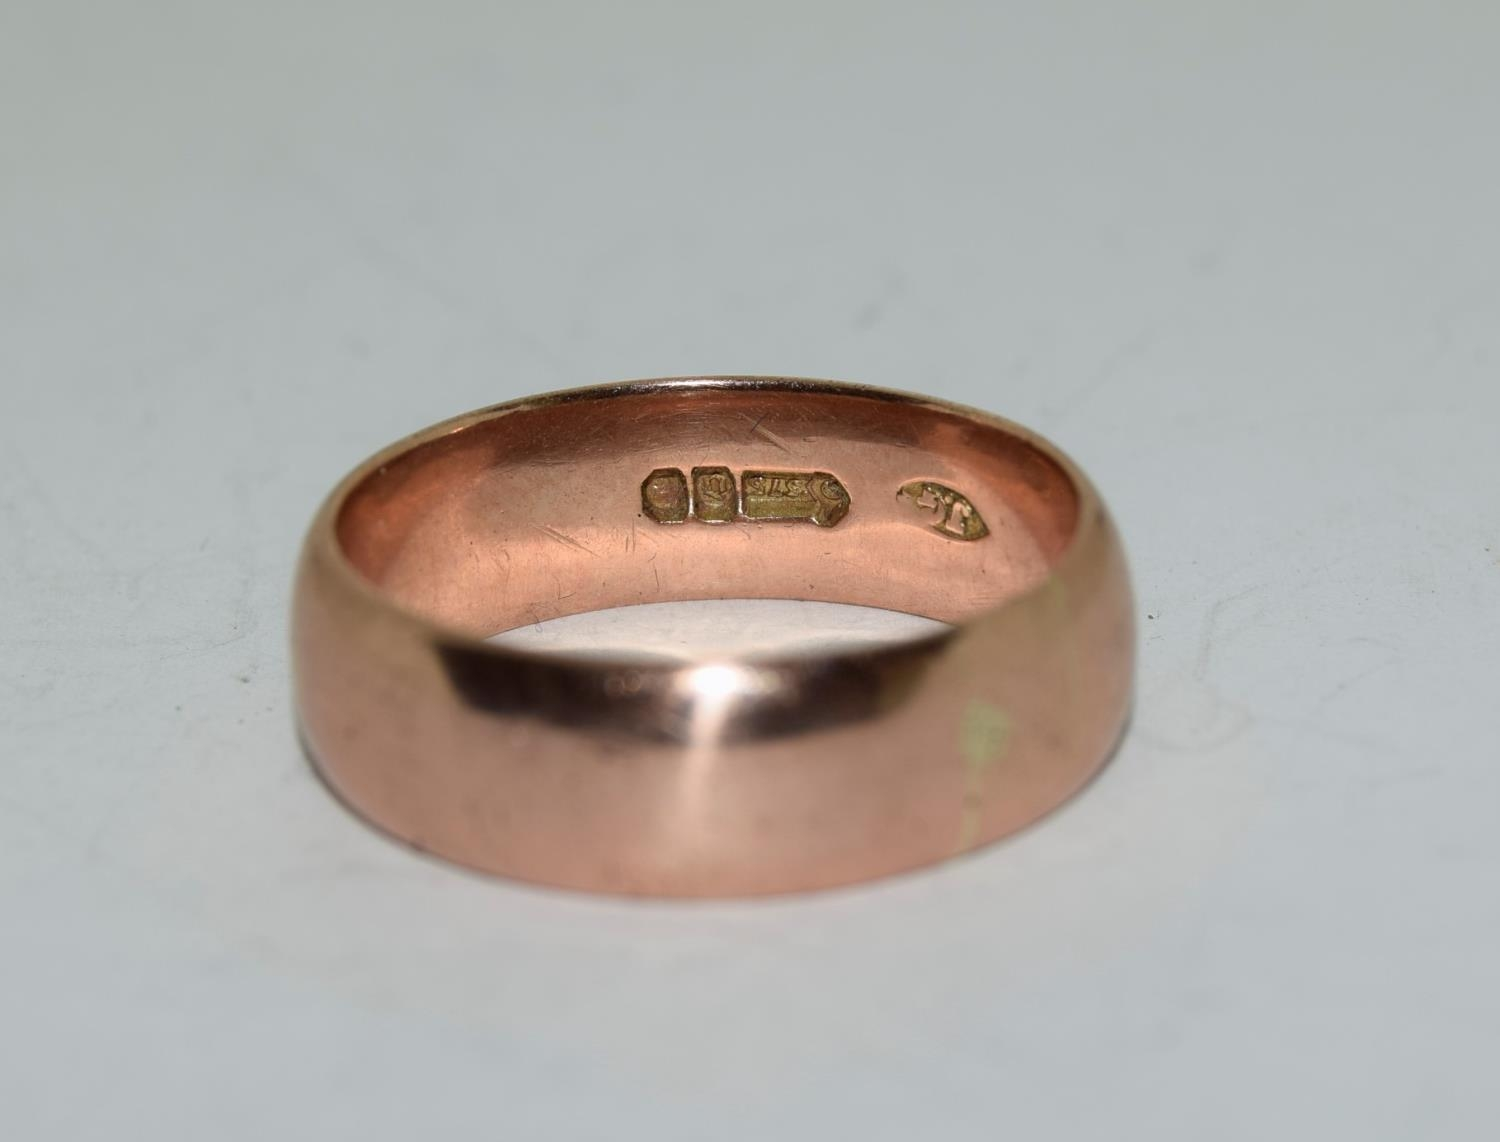 9ct gold mans wedding band size X 8.7gm - Image 3 of 6